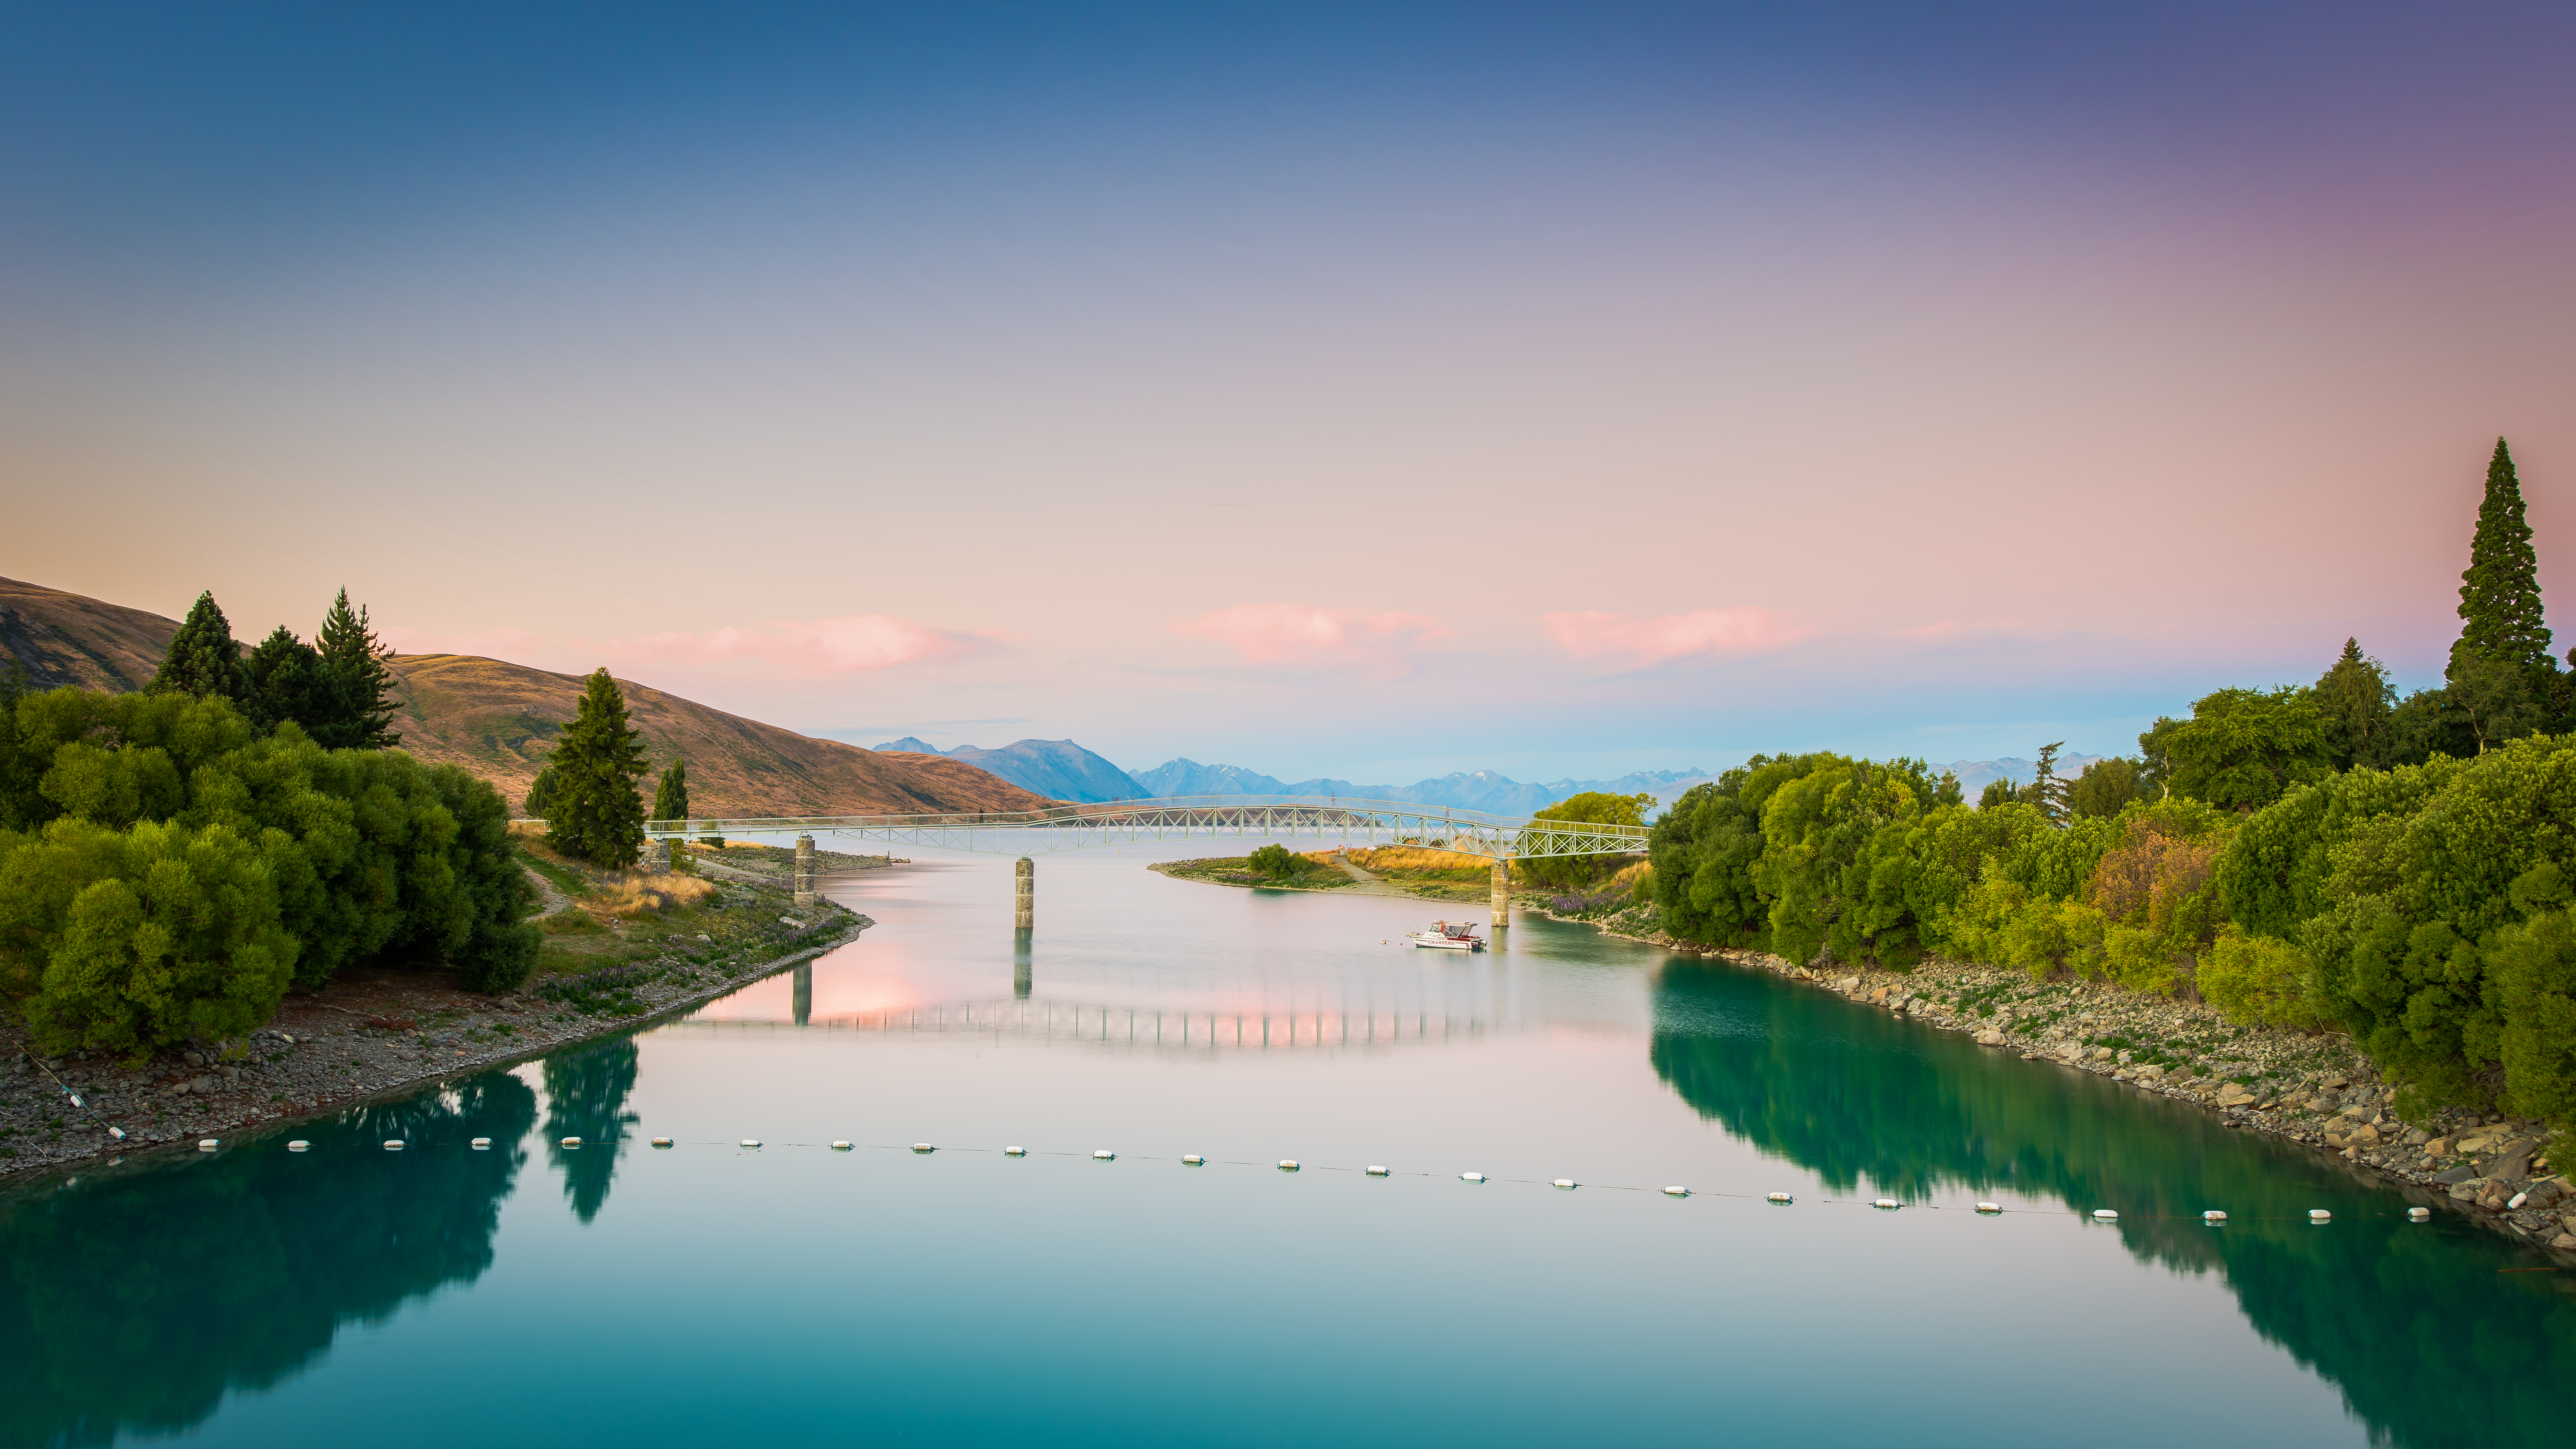 Lake Tekapo Bridge